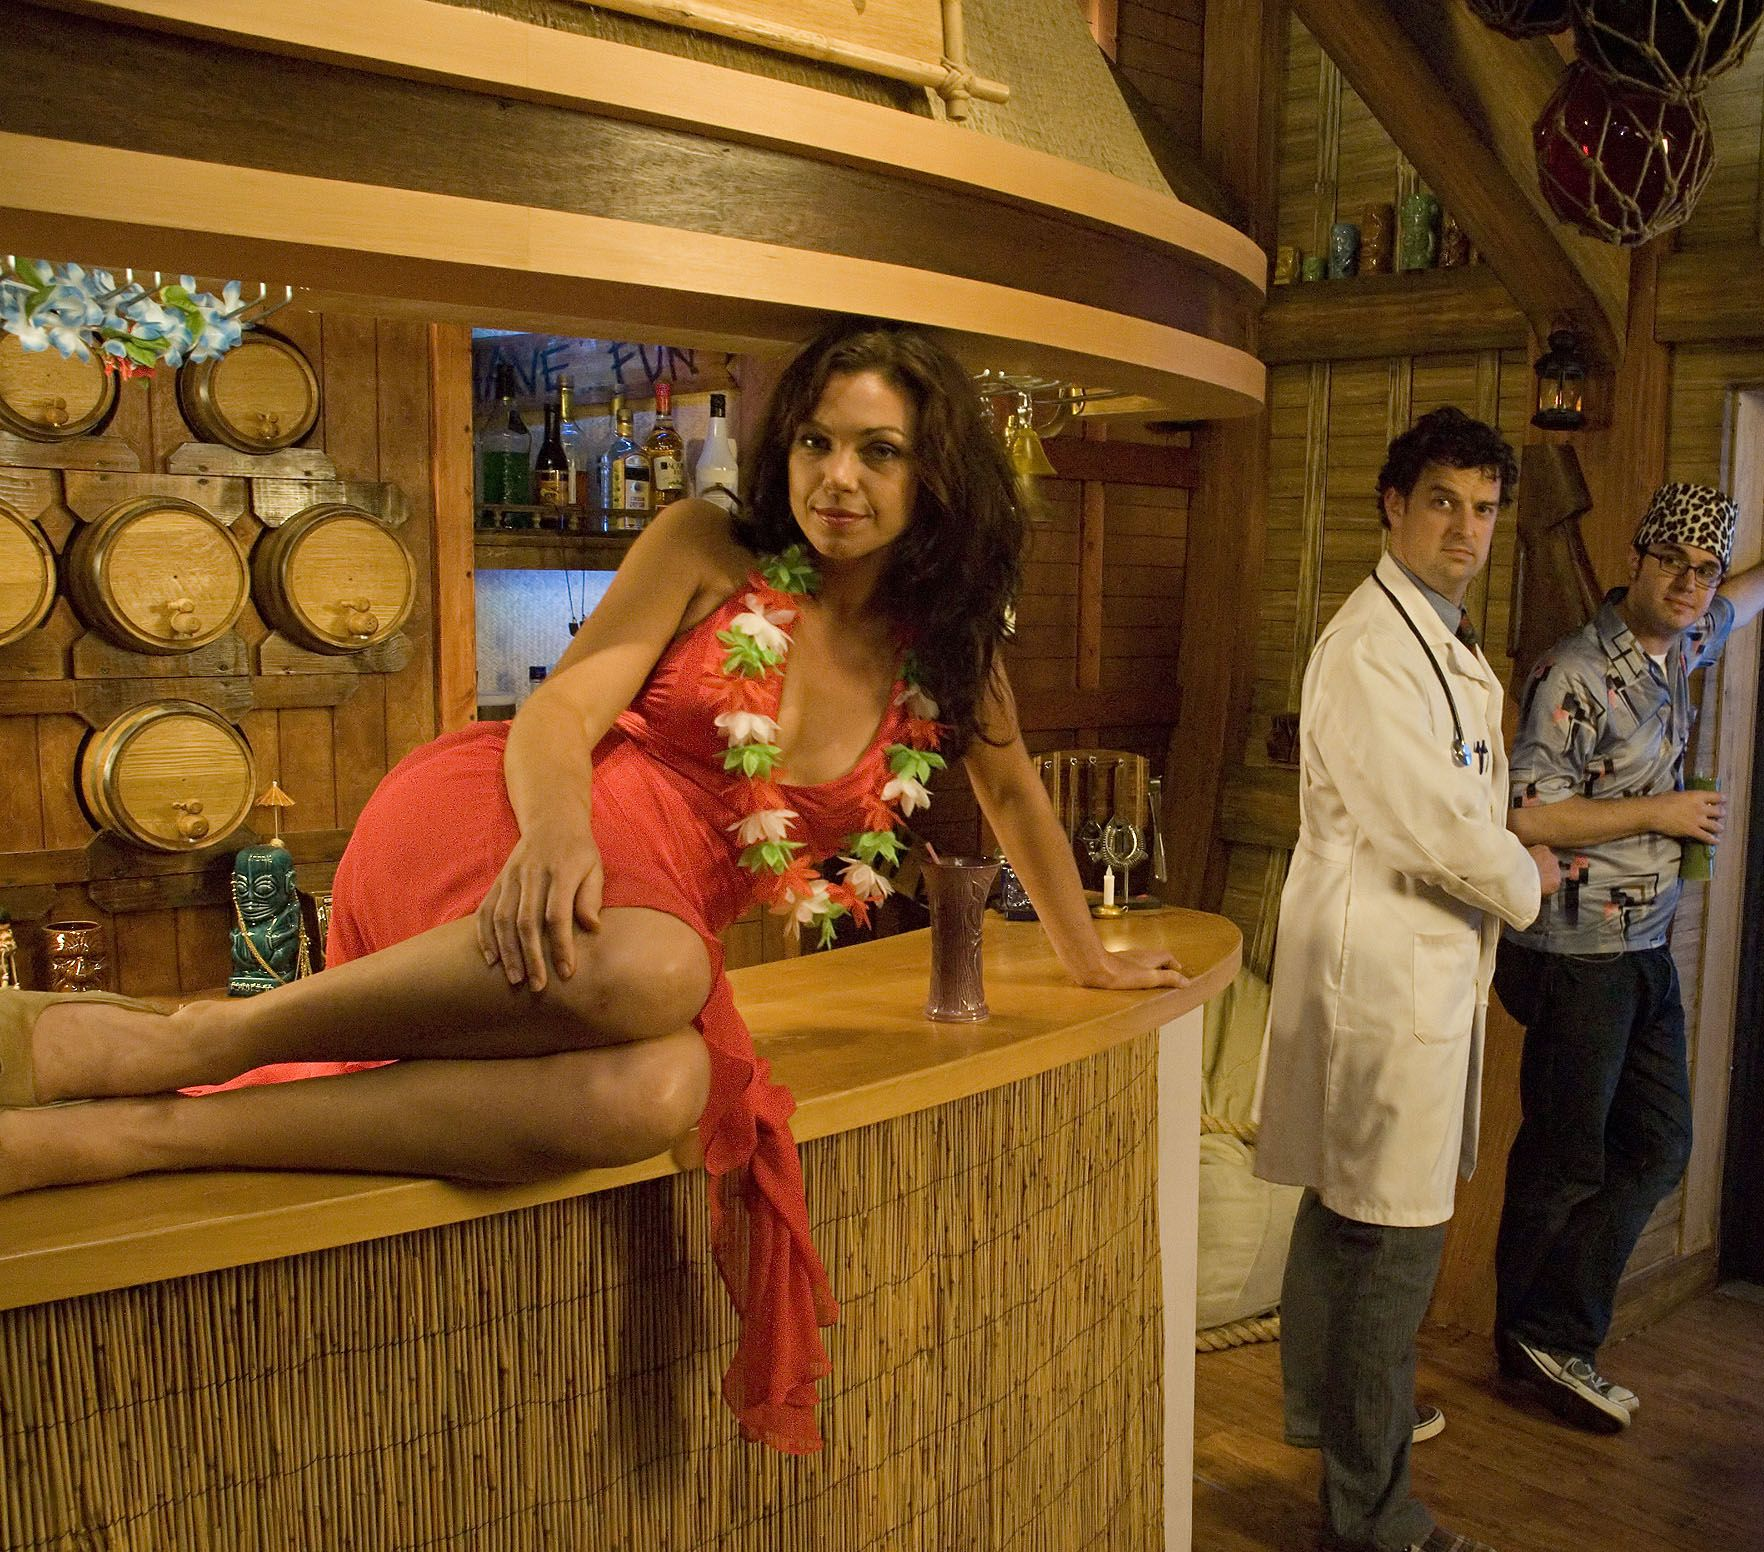 34 Awesome Basement Bar Ideas And How To Make It With Low: Tiki Bar TV Cast And Set